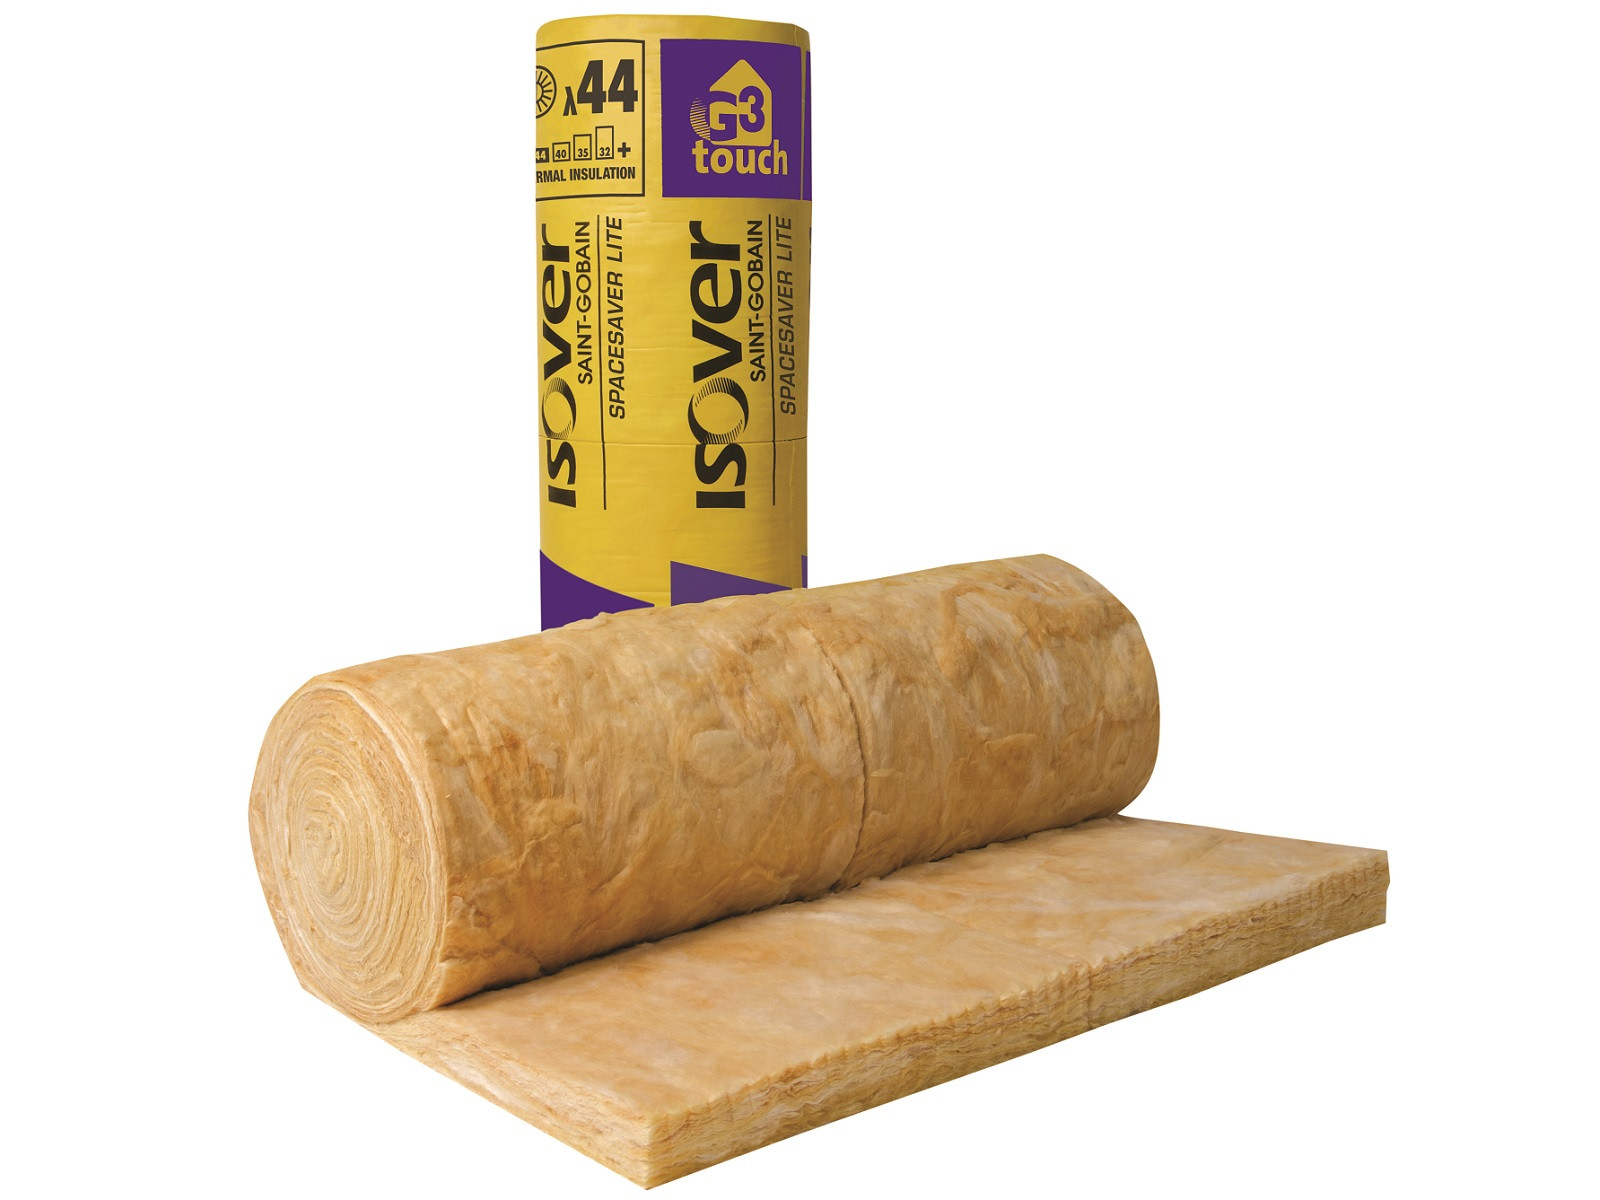 Spacesaver lite g3 touch mineral wool loft insulation for 3 mineral wool insulation